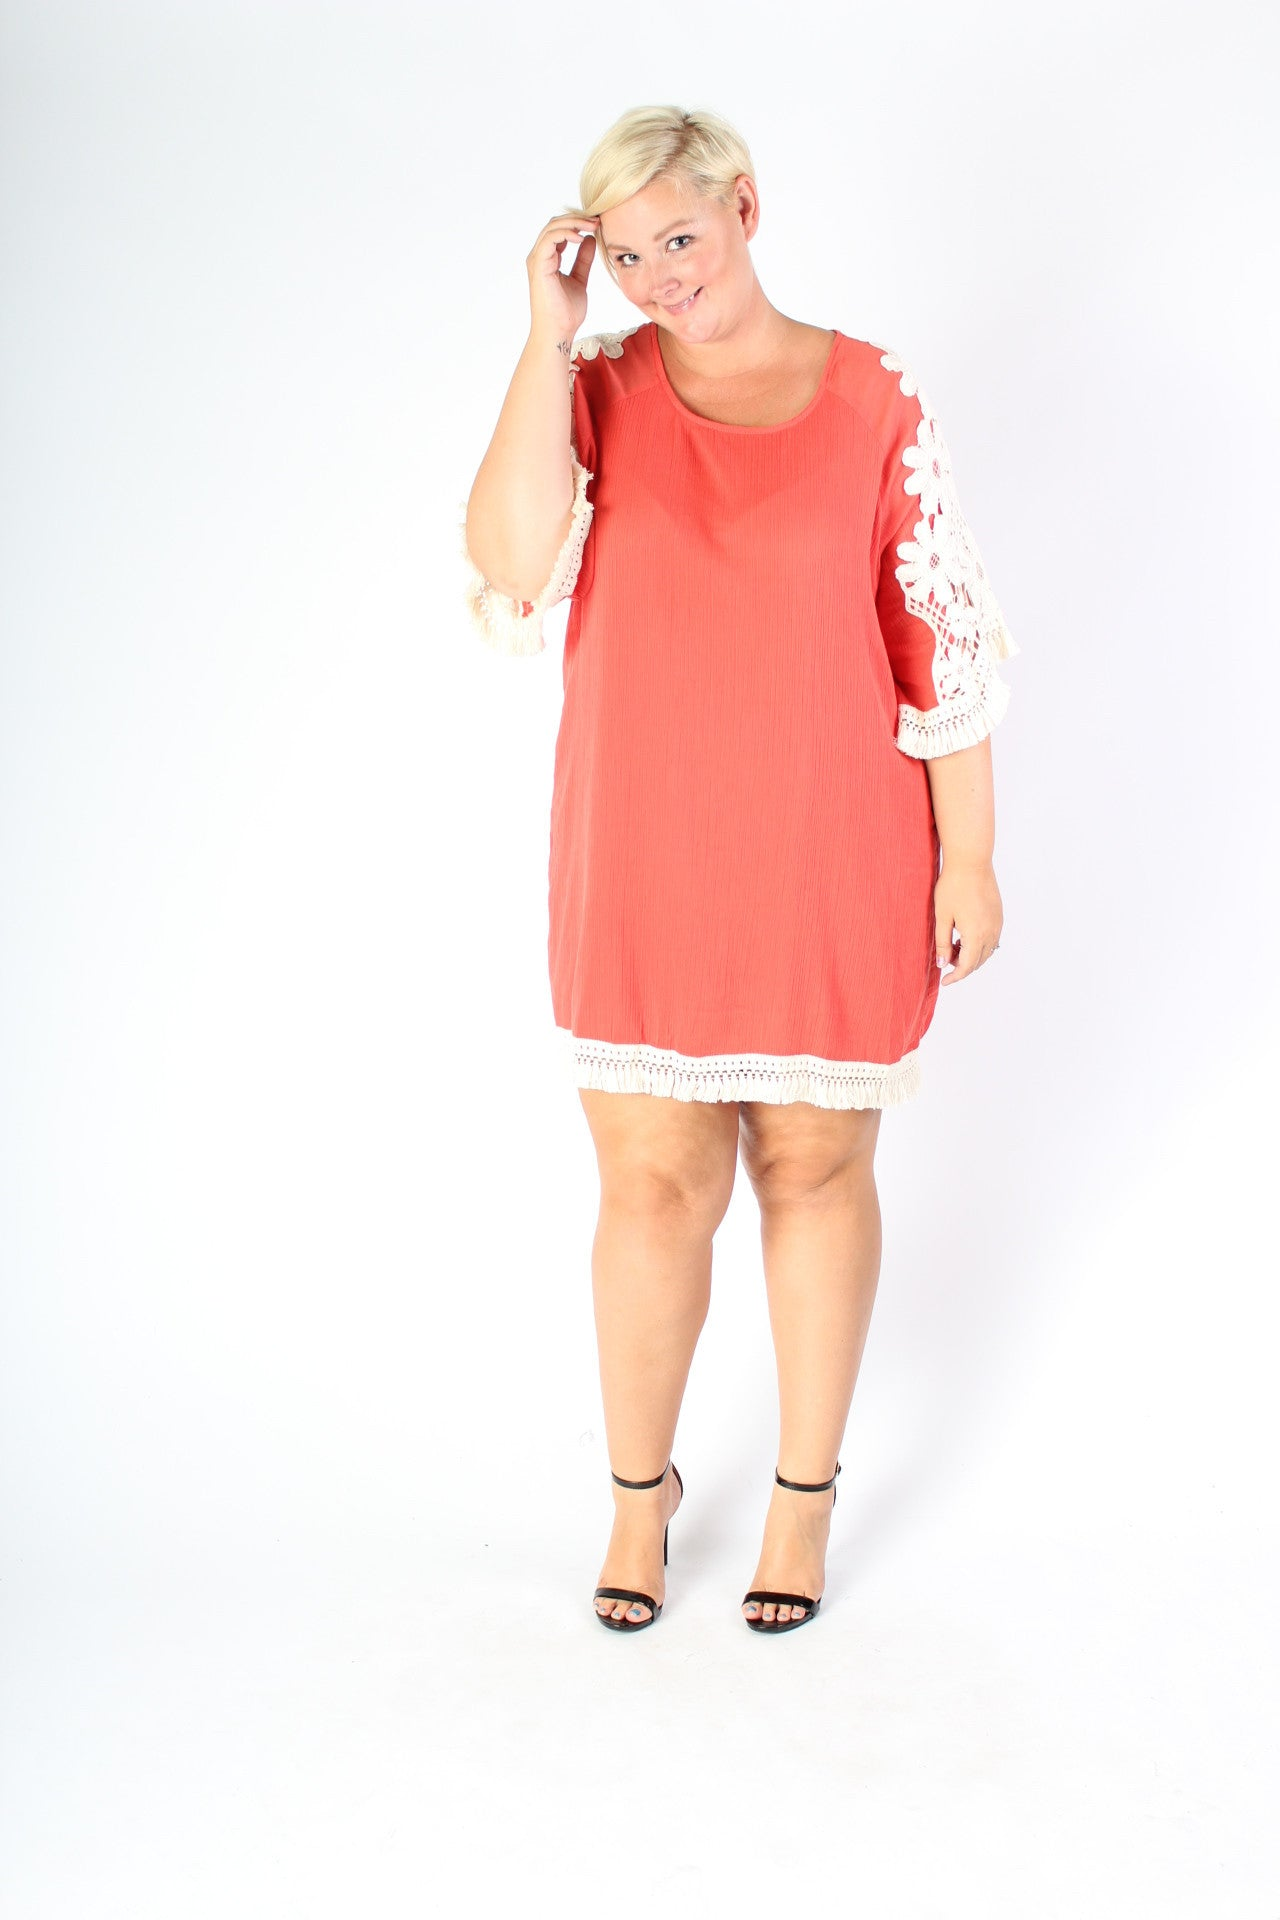 Plus Size Clothing for Women - Crochet Shift Dress - Papaya - Society+ - Society Plus - Buy Online Now! - 5